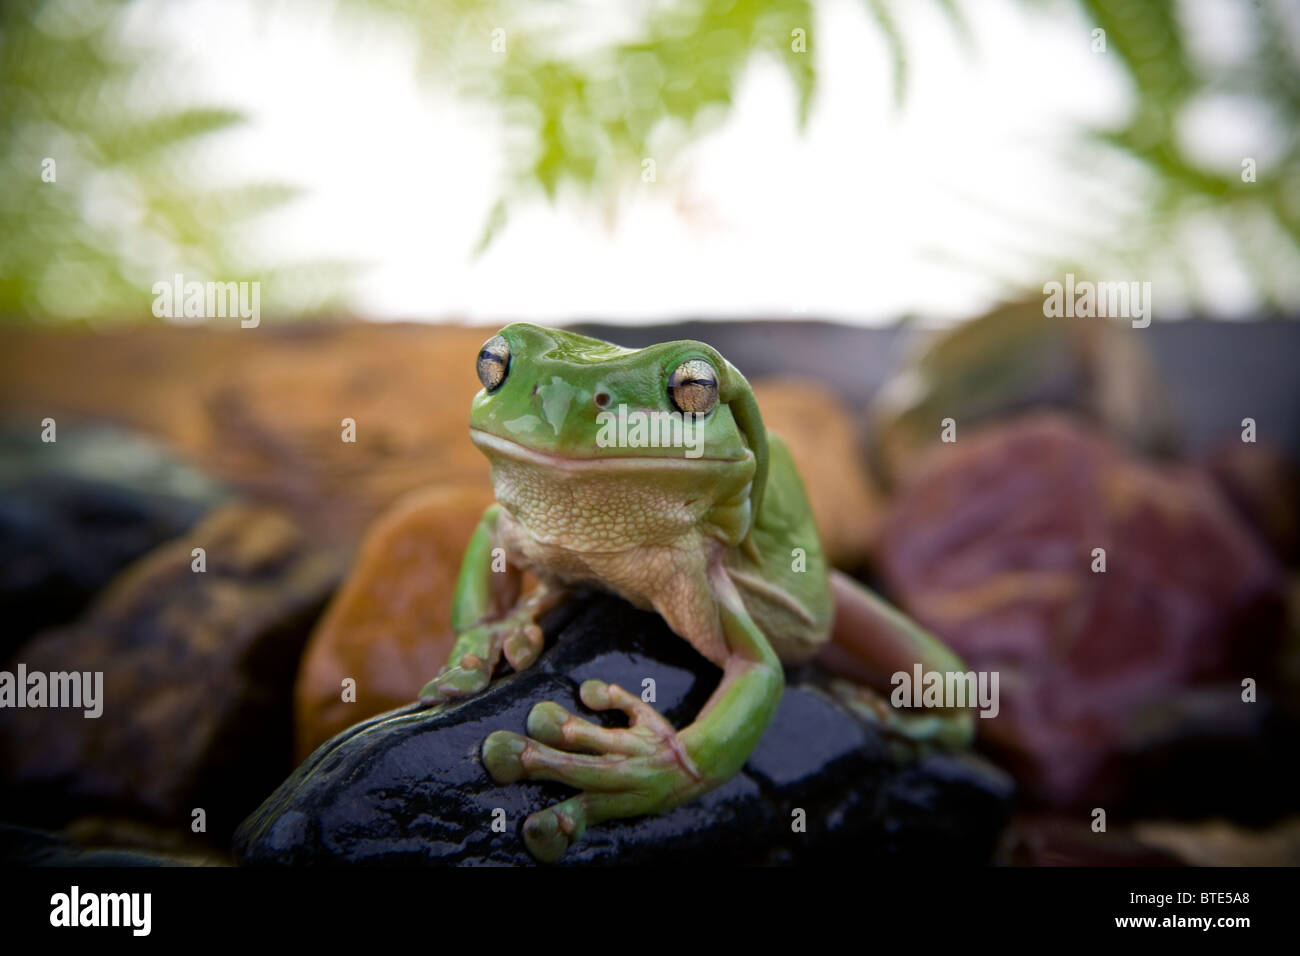 Australian Green Tree Frog posed sitting on a black rock in rainforest styled environment - Stock Image